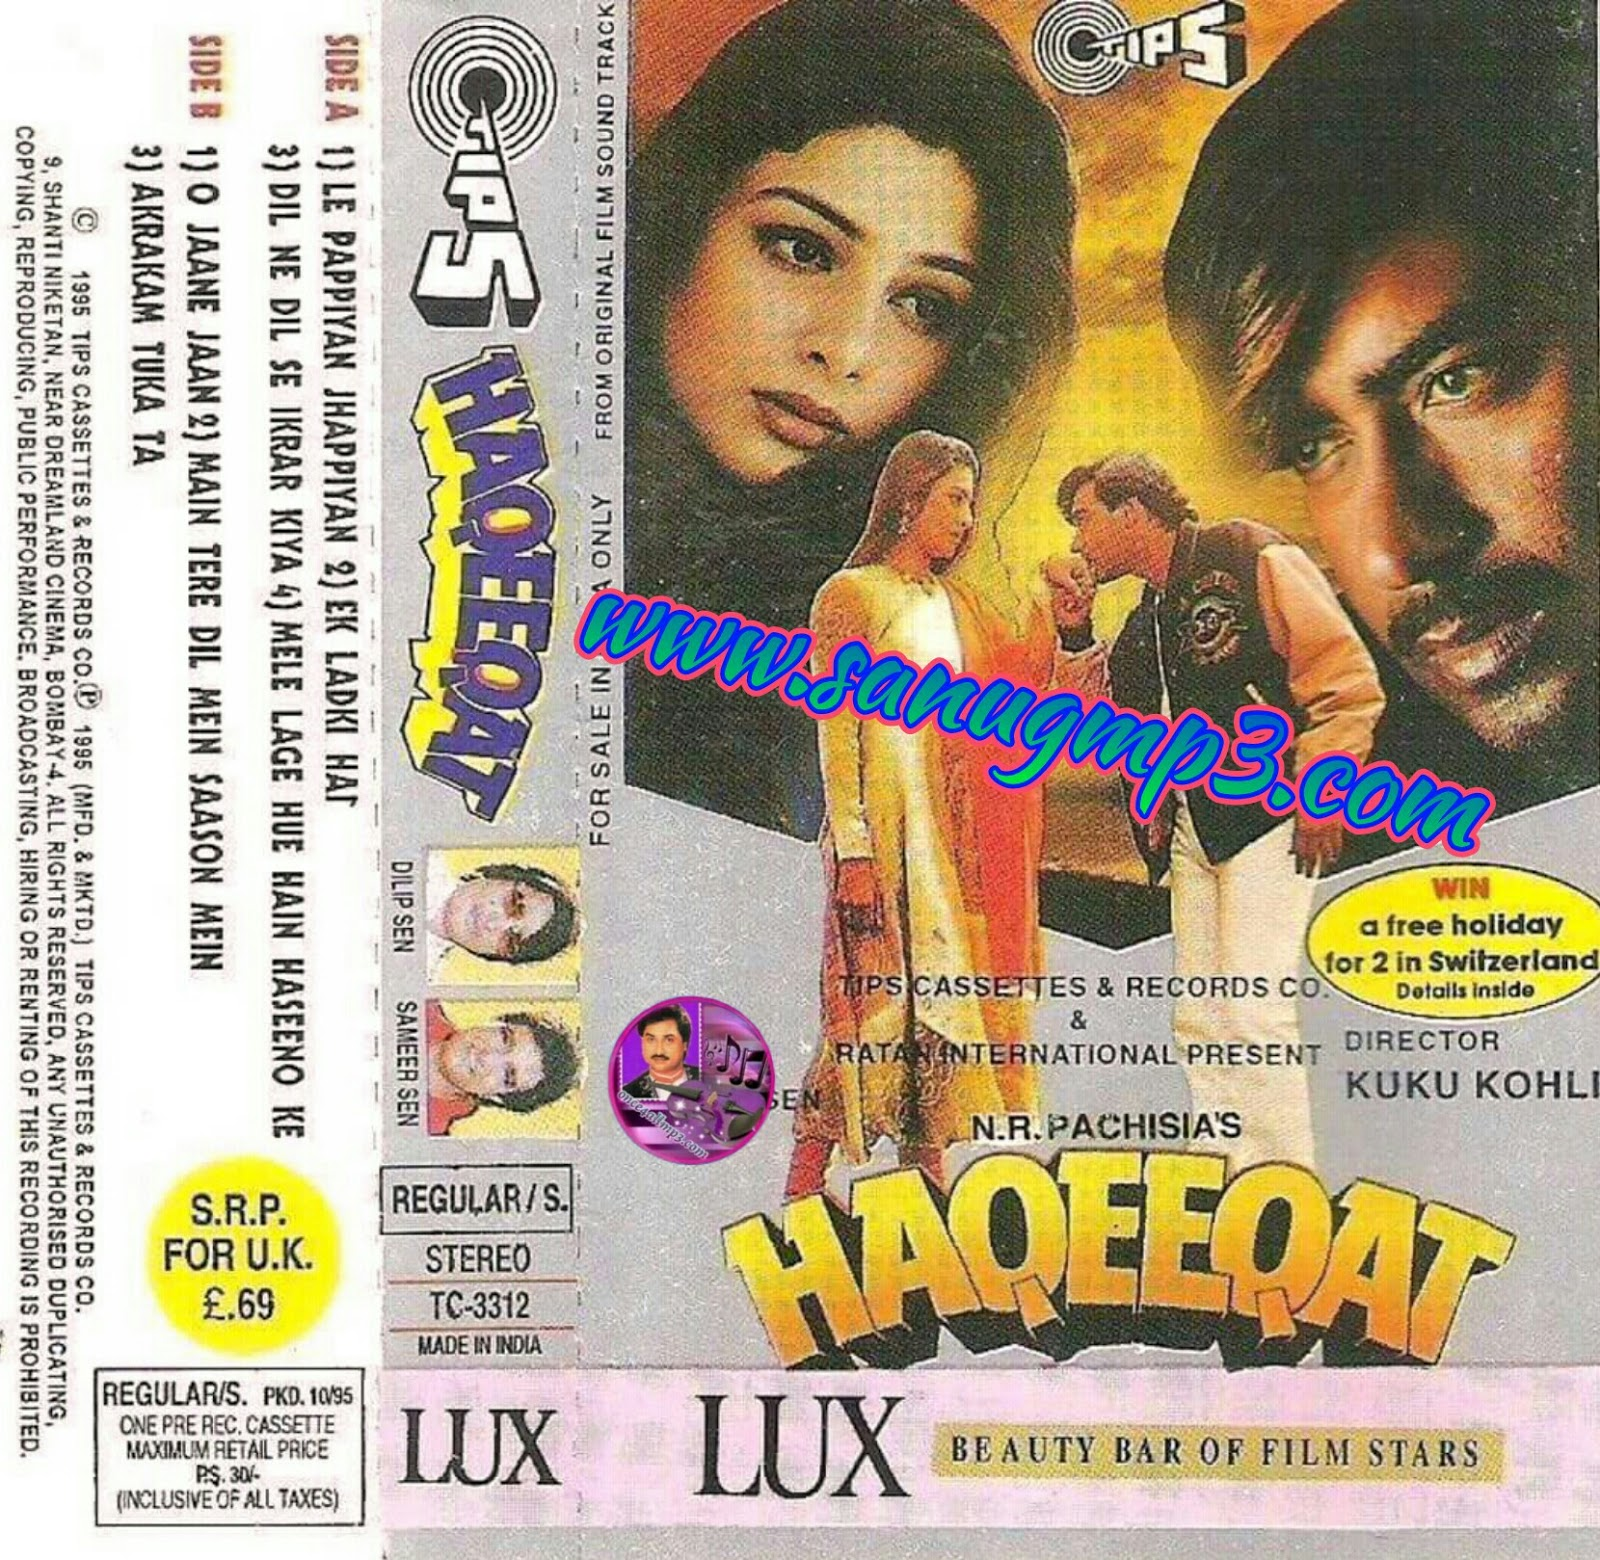 Hay O Meri Jaan Mp3 Song Free Download: ONLY KUMAR SANU MP3 SONGS DOWNLOAD HERE: Haqeeqat 1995